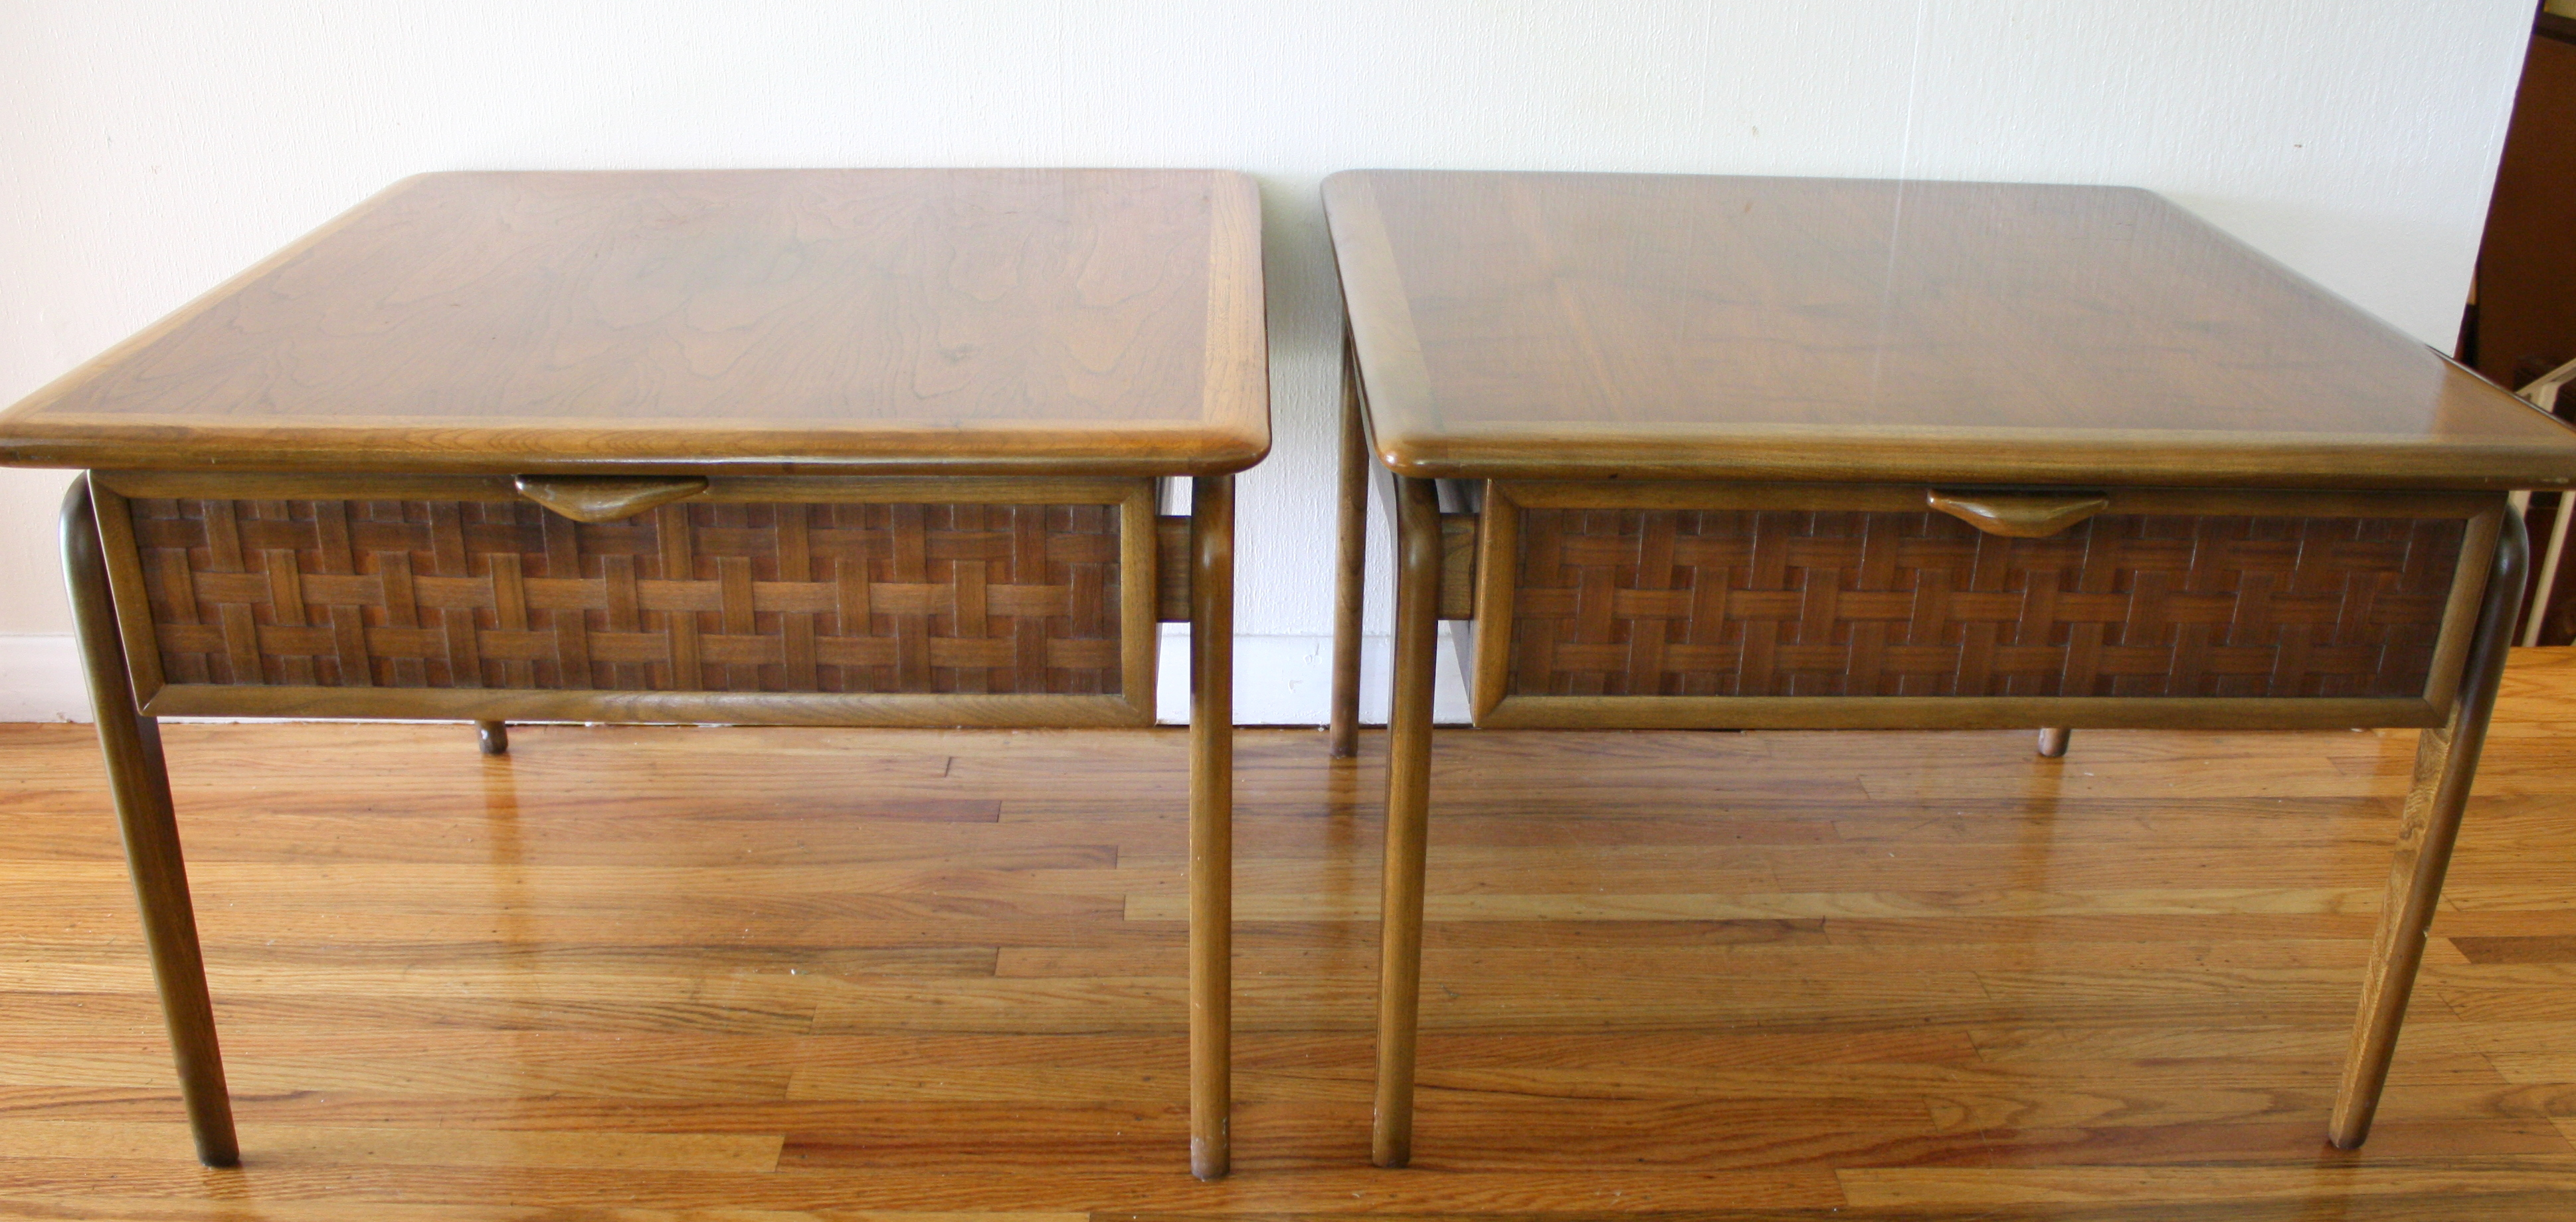 Mid century modern coffee table and side tables lane perception series picked vintage Modern coffee and end tables